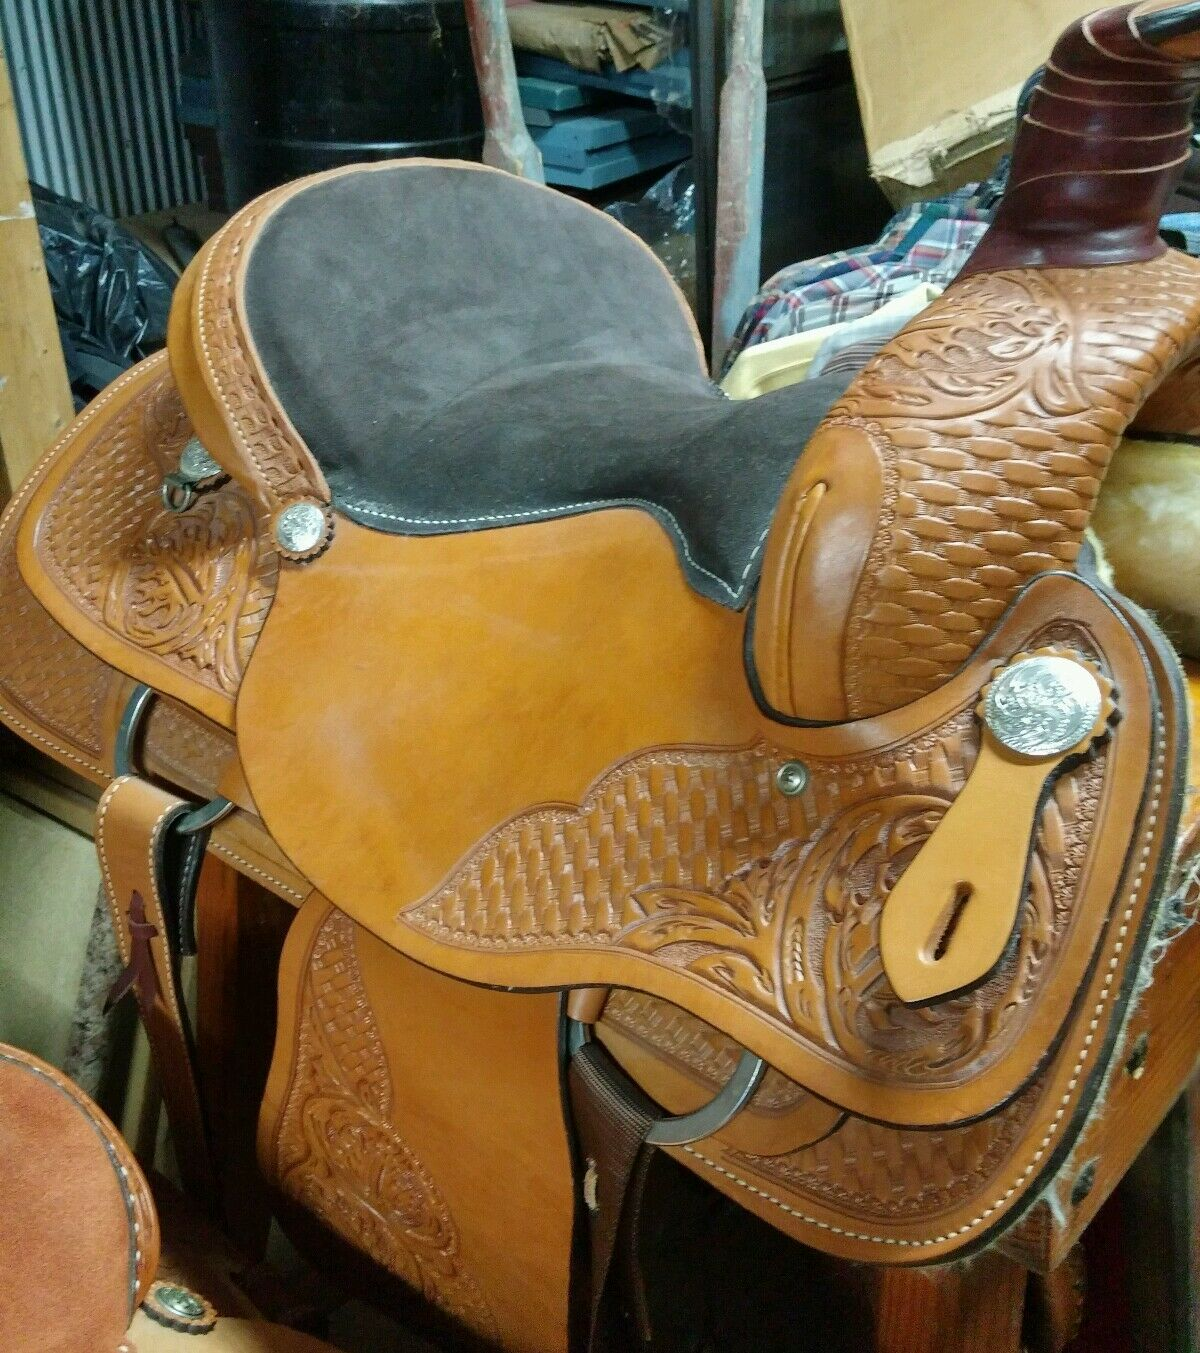 Ran Tan 15 inch Steele Equi-Fit Leather Roping   Western Saddle New  store